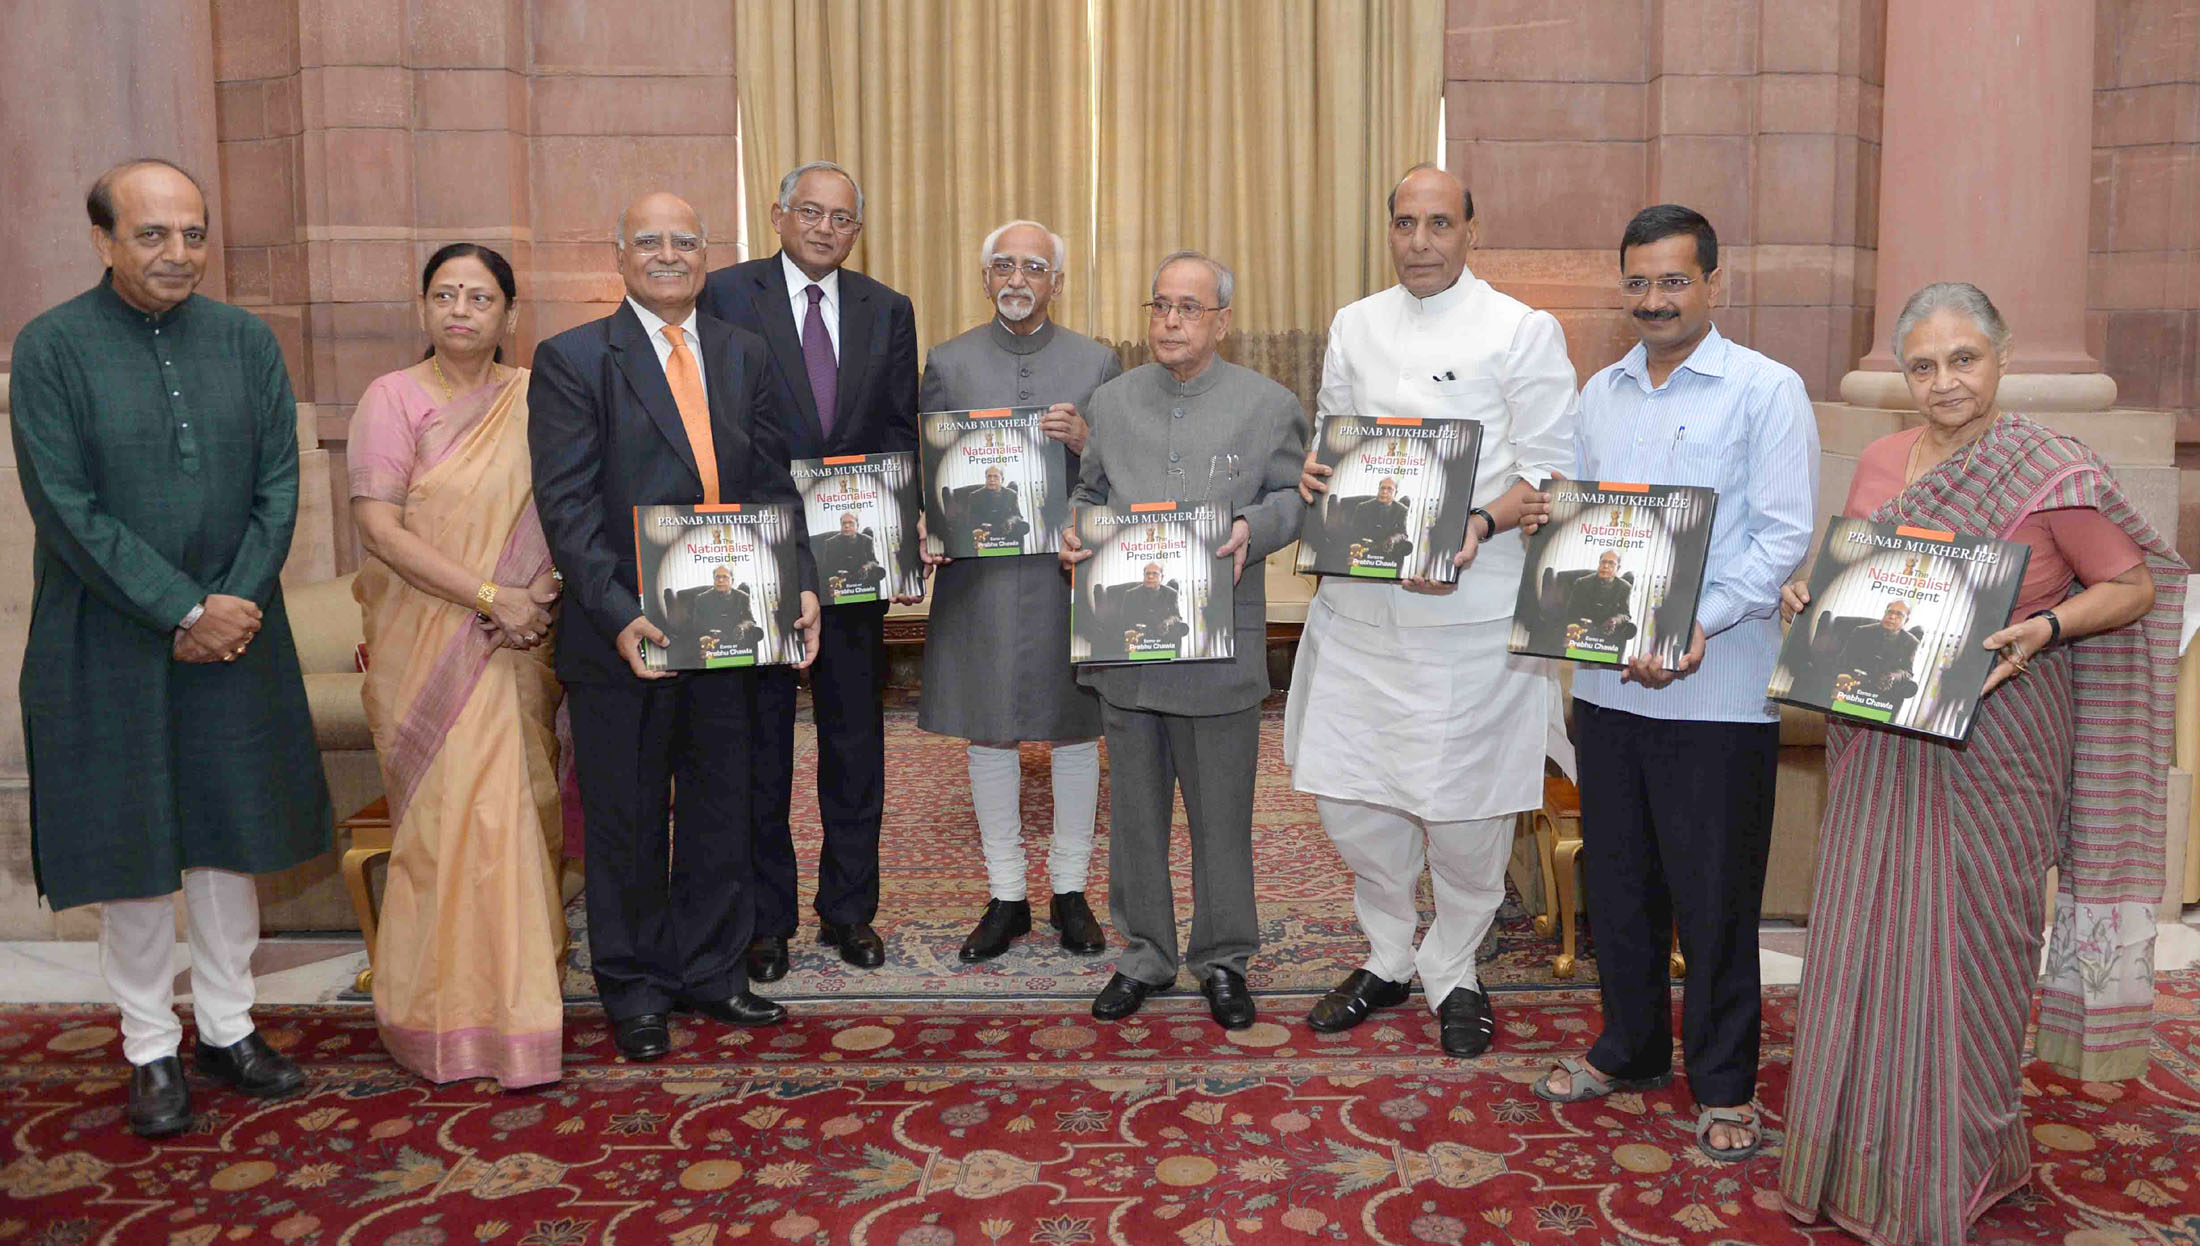 The President, Shri Pranab Mukherjee received the first copy of the Coffee Table Book 'The Nationalist President Pranab Mukherjee', edited by Shri Prabhu Chawla, at Rashtrapati Bhavan, in New Delhi on October 07, 2015. The Vice President, Shri Mohd. Hamid Ansari, the Union Home Minister, Shri Rajnath Singh, the Chief Minister of Delhi, Shri Arvind Kejriwal and other dignitaries are also seen.